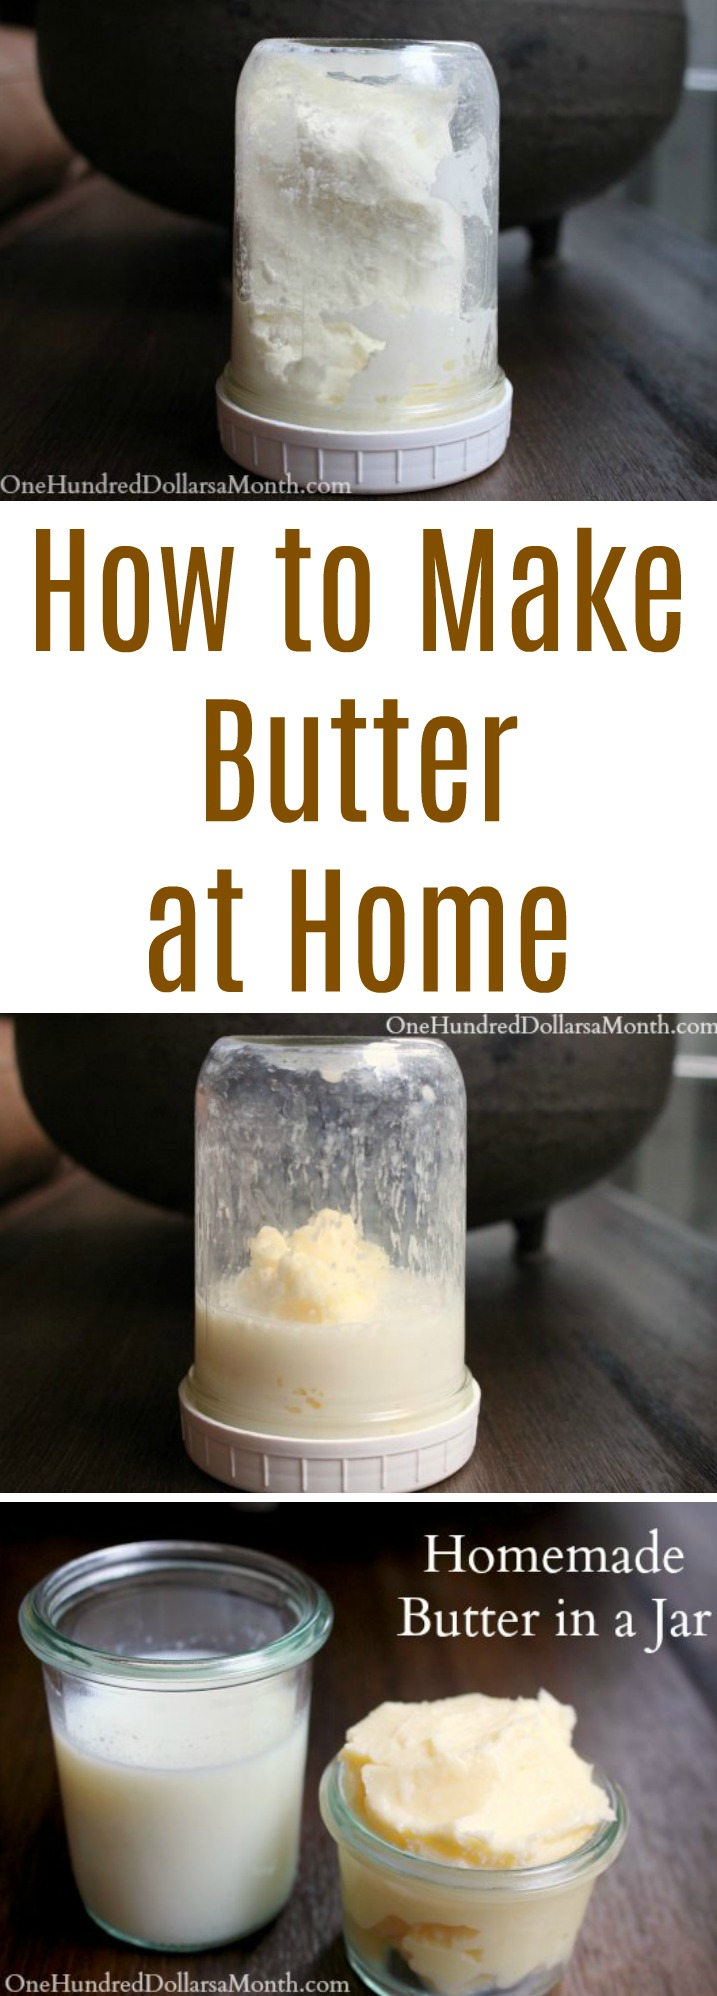 Homemade Butter in a Jar – Easy Kids Projects